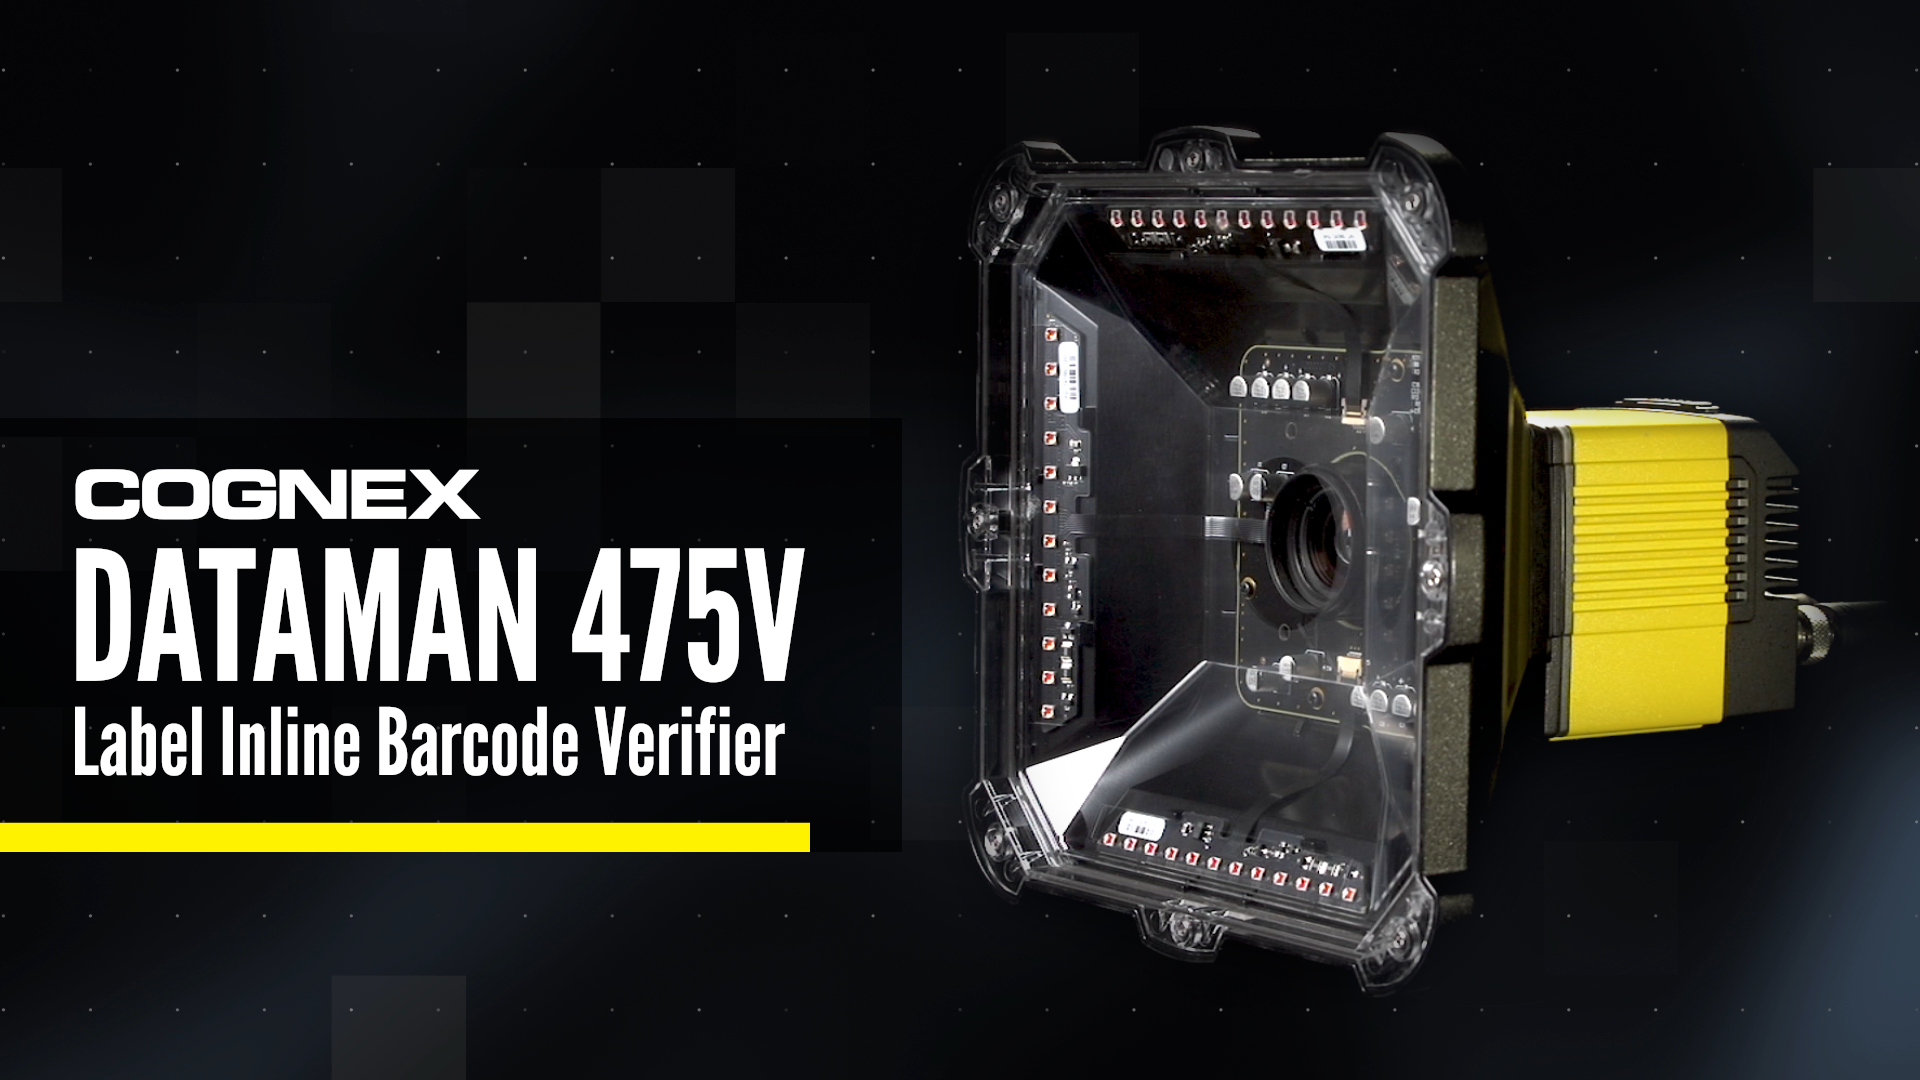 DataMan 475V Product Overview